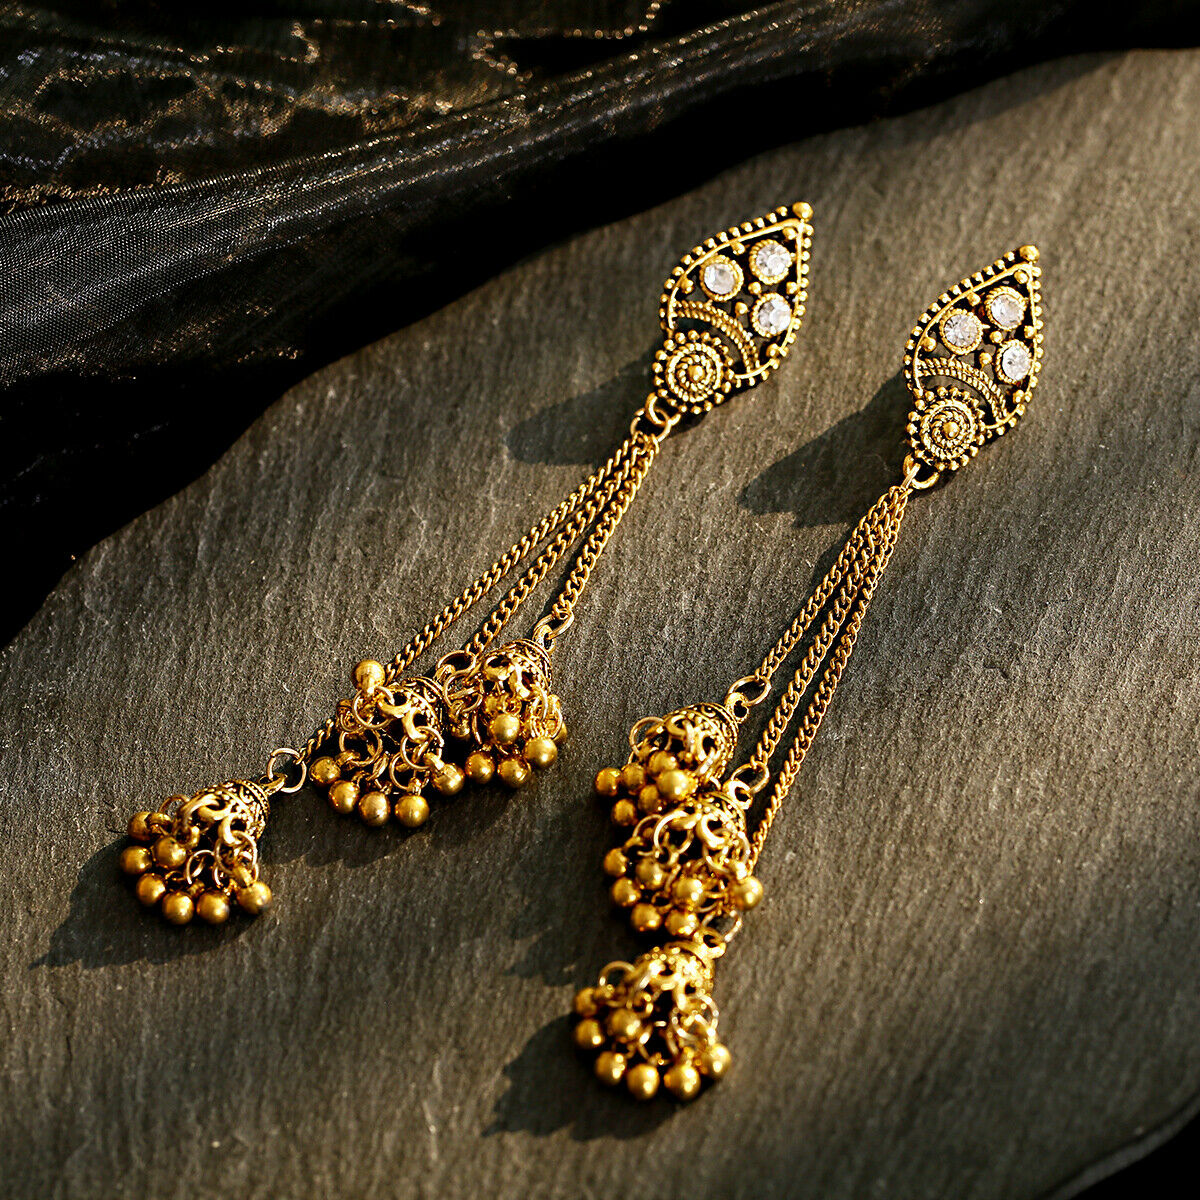 Women Jewelry Bohemia Indian Charm Gold&Silver Pendant Fashion Retro Earrings 8